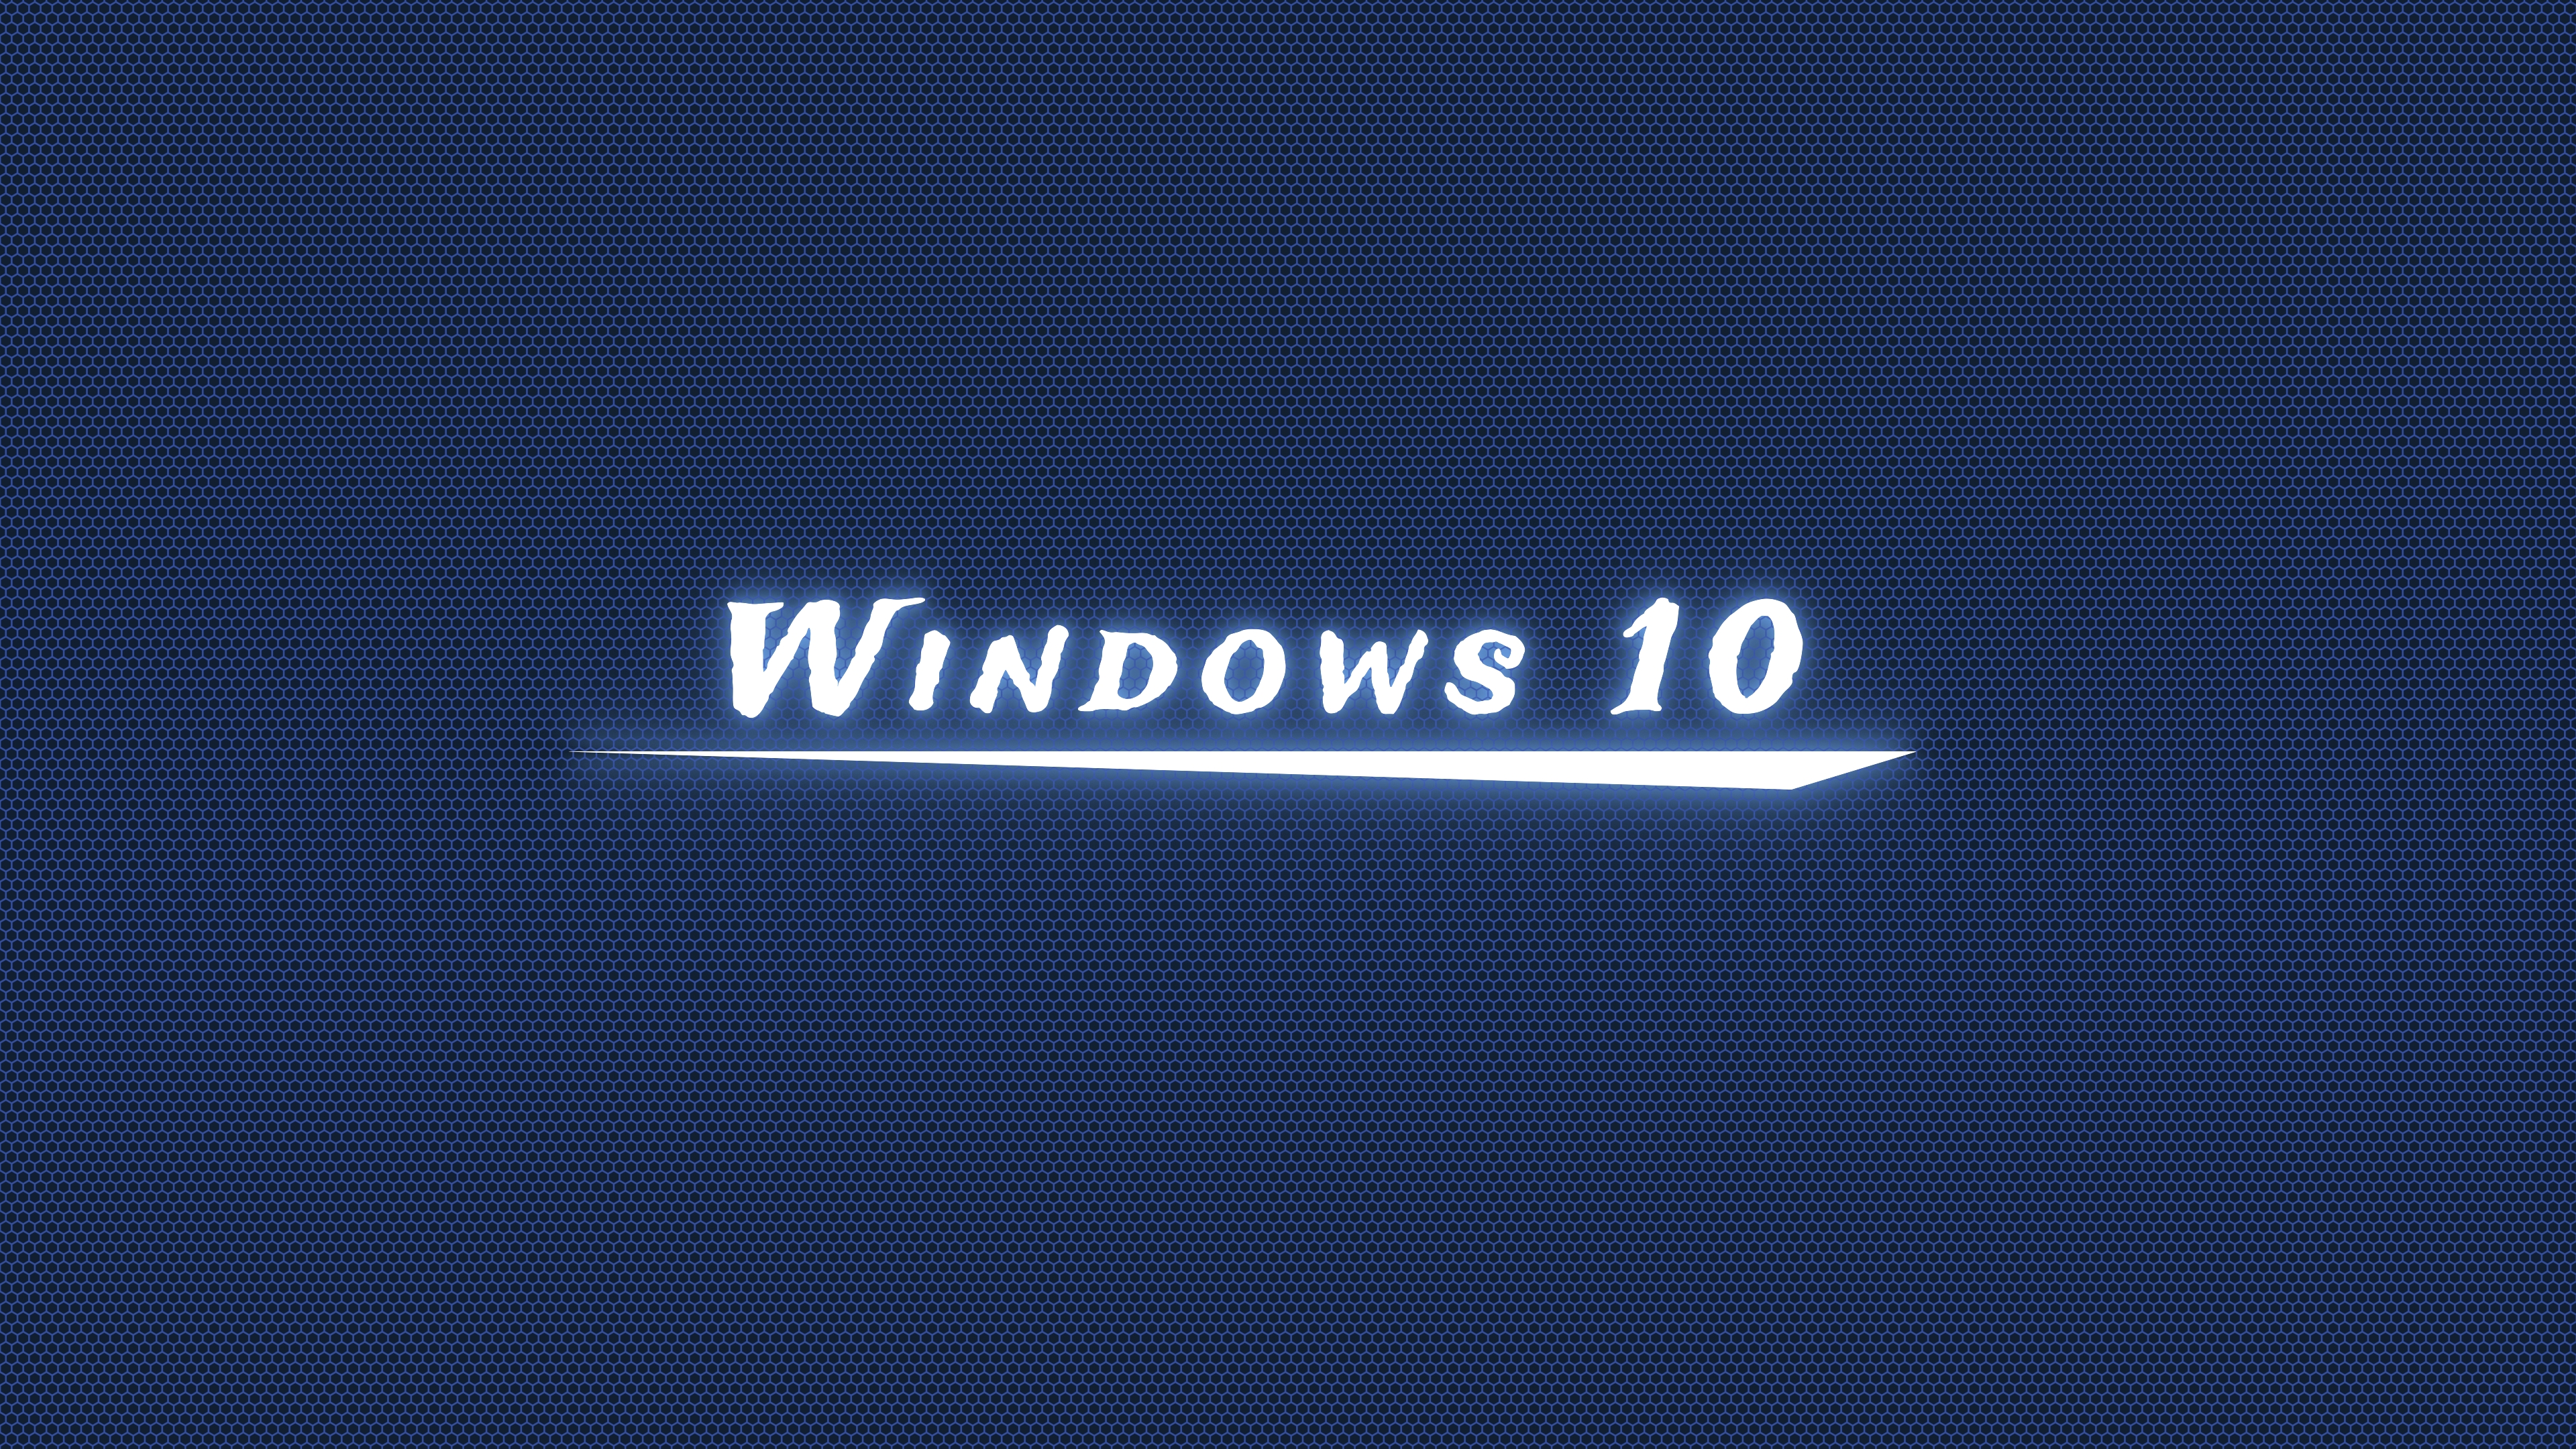 windows 10 dark blue wallpaper Computer Wallpapers Desktop 3840x2160